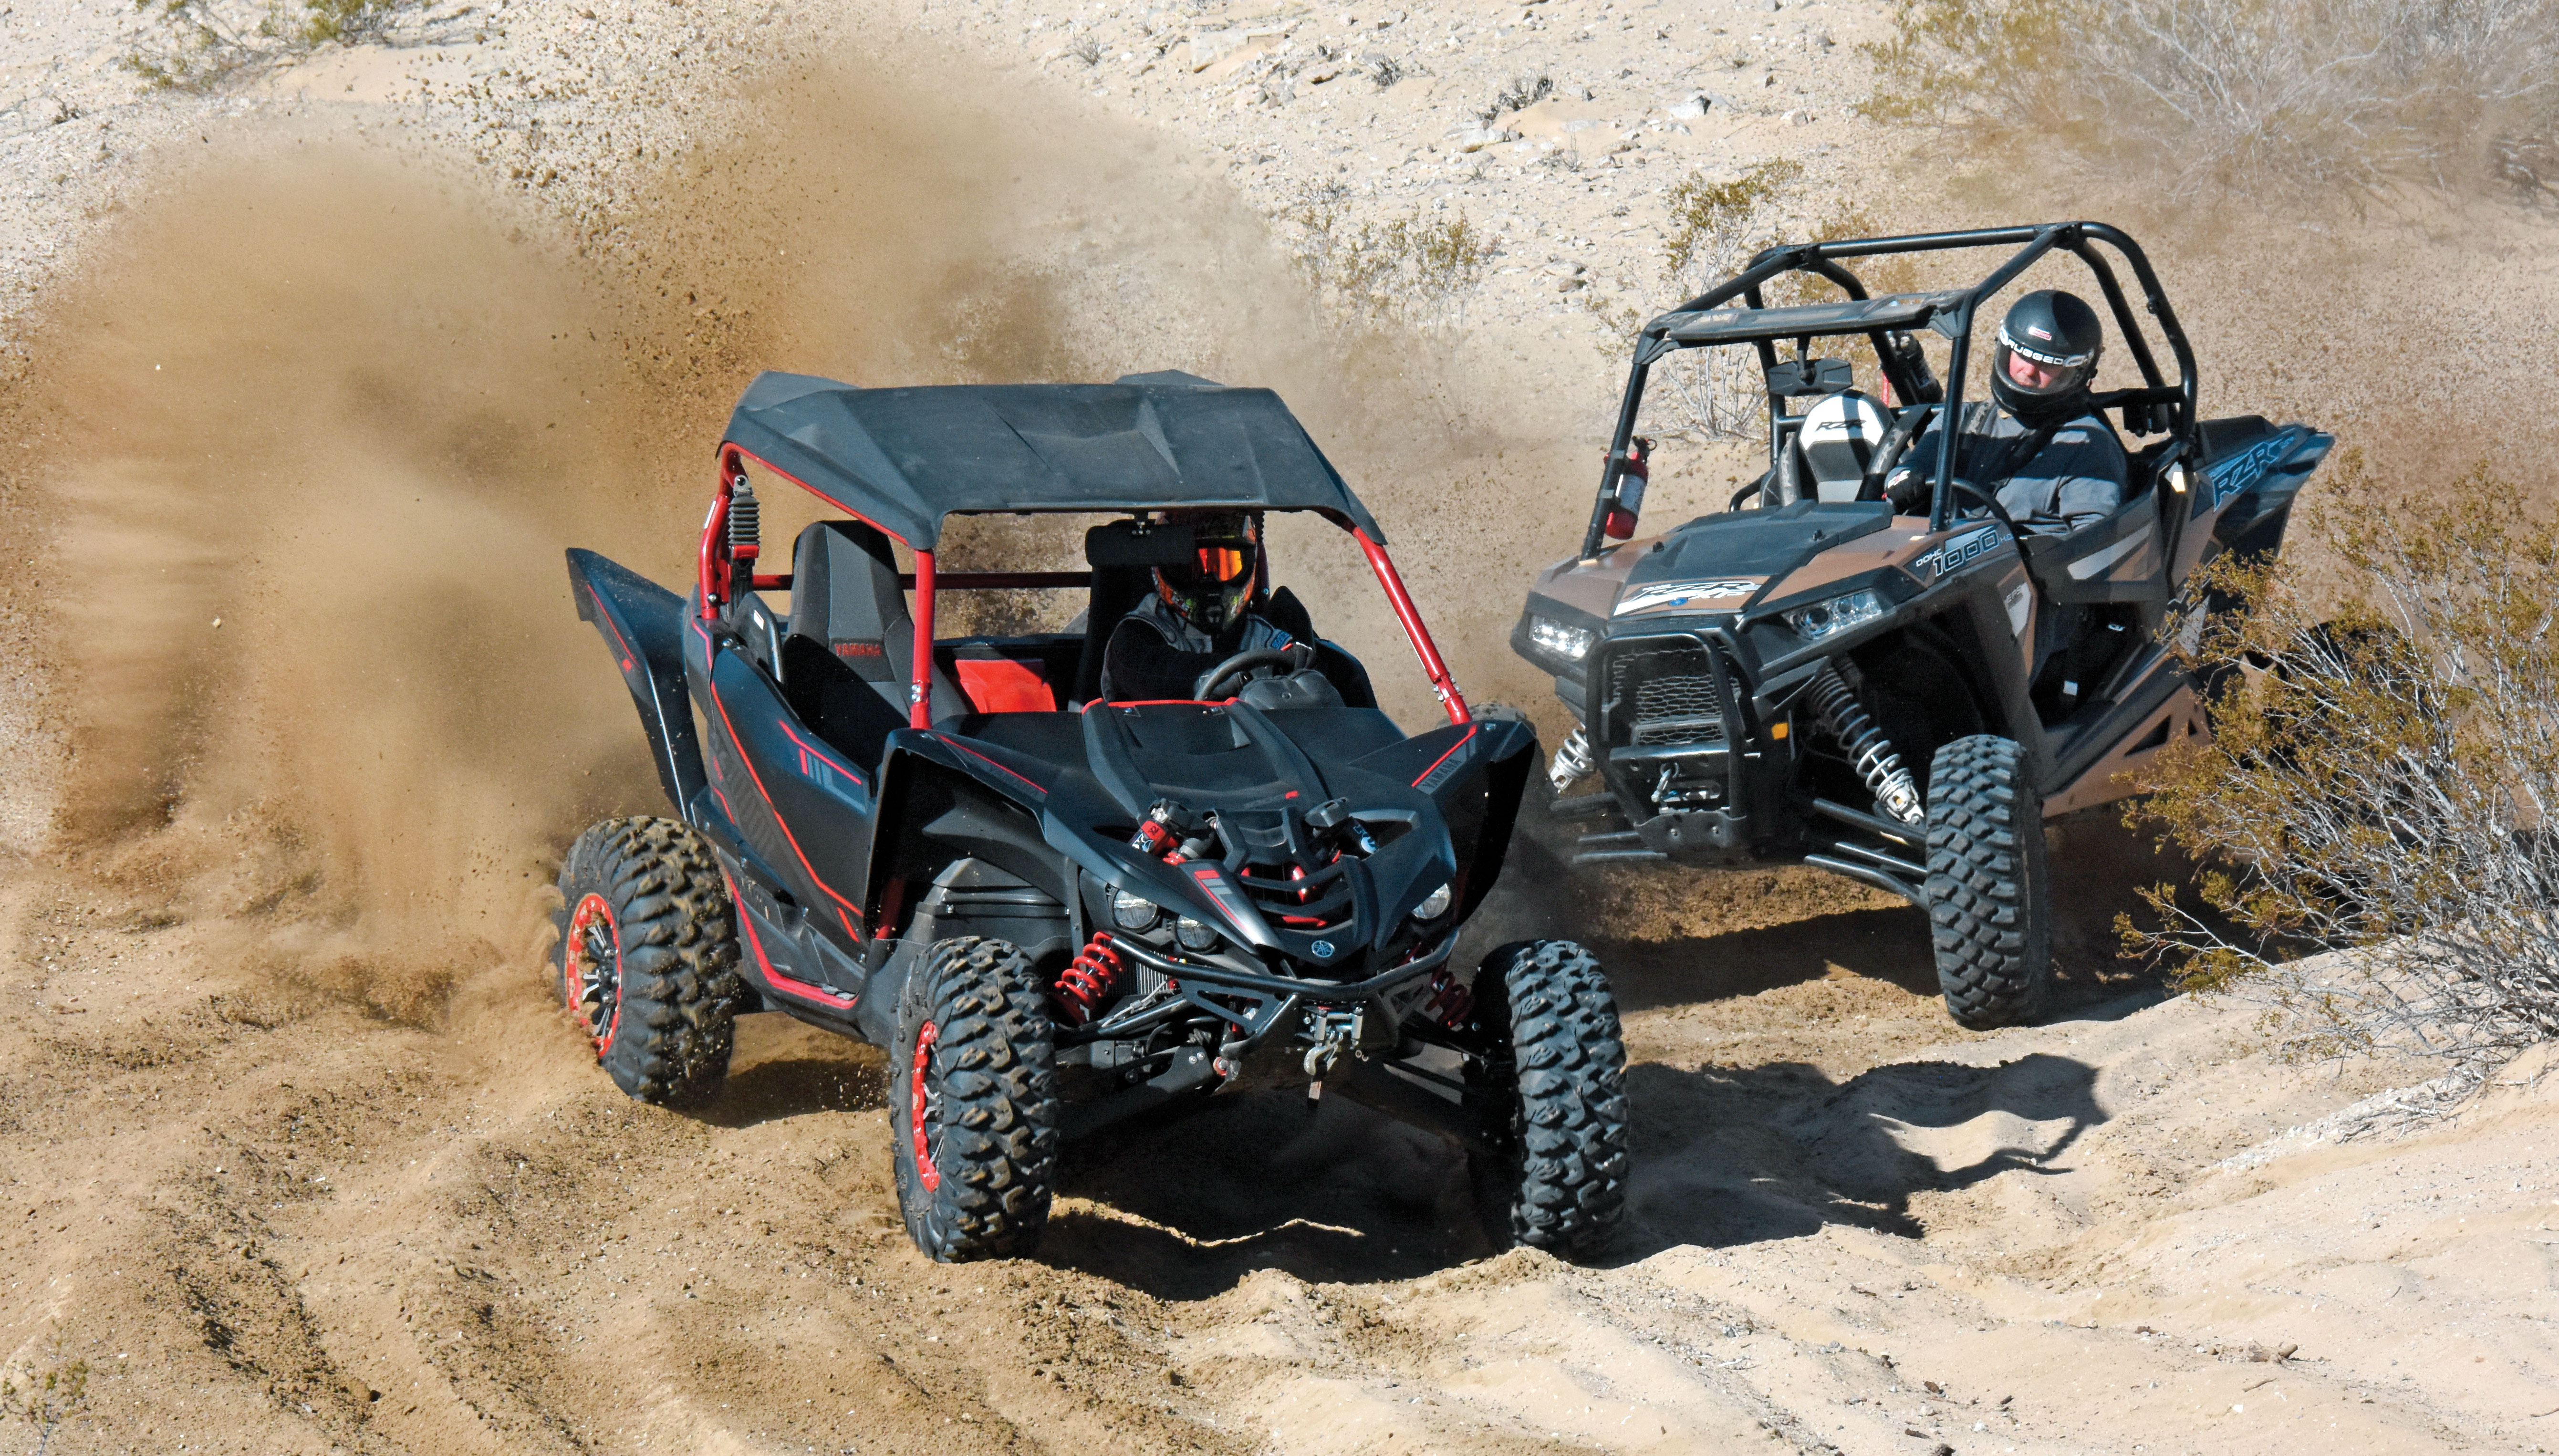 Shootout Polaris Rzr Xp 1000 Vs Yamaha Gytr Yxz1000r